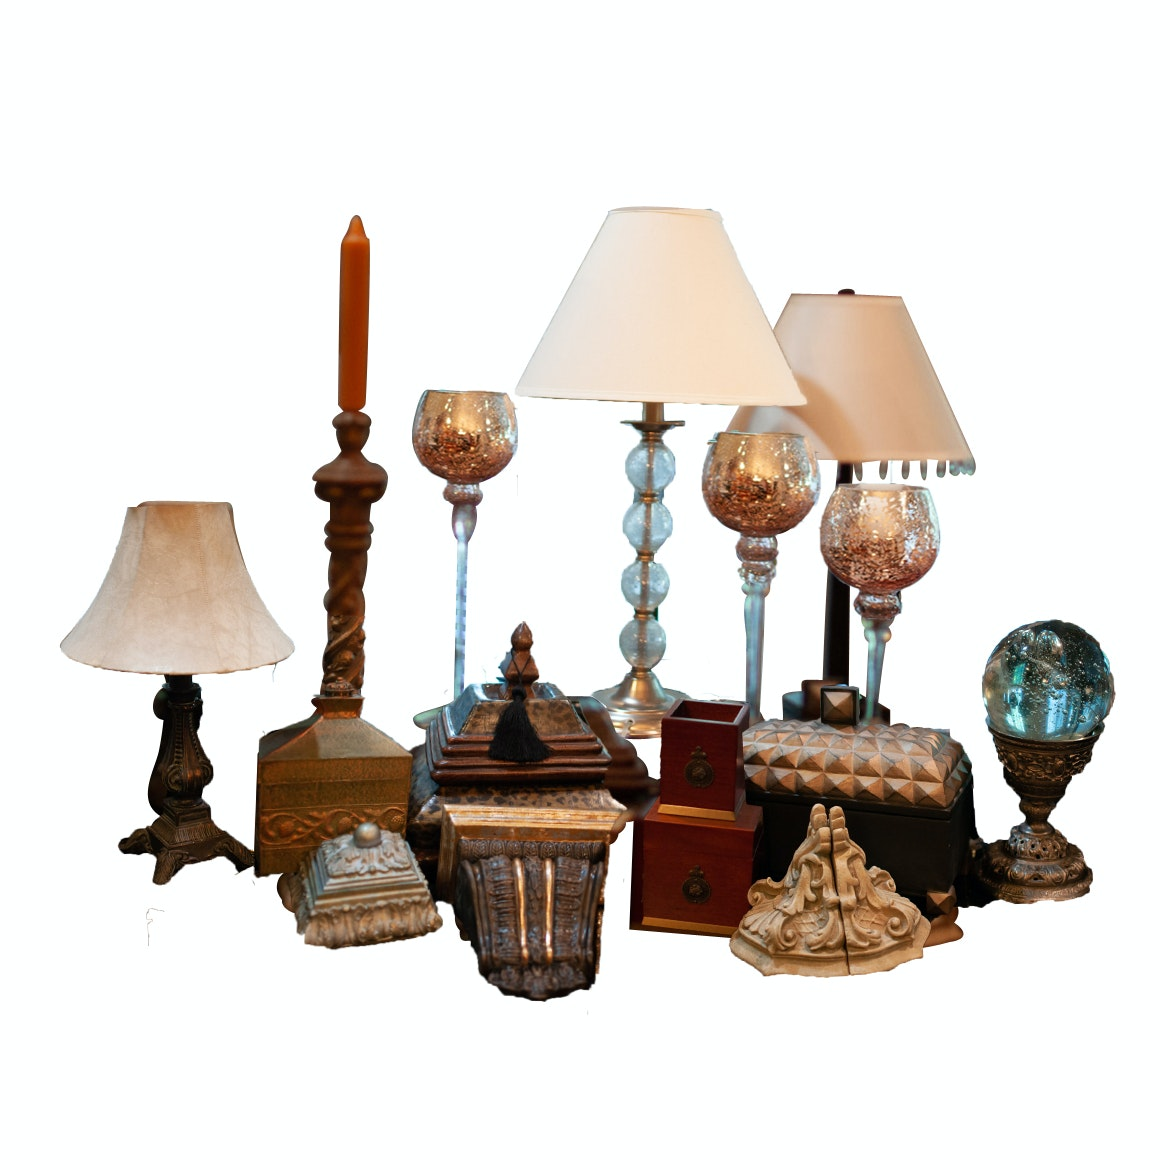 Decorative Boxes, Candlesticks and Lamps